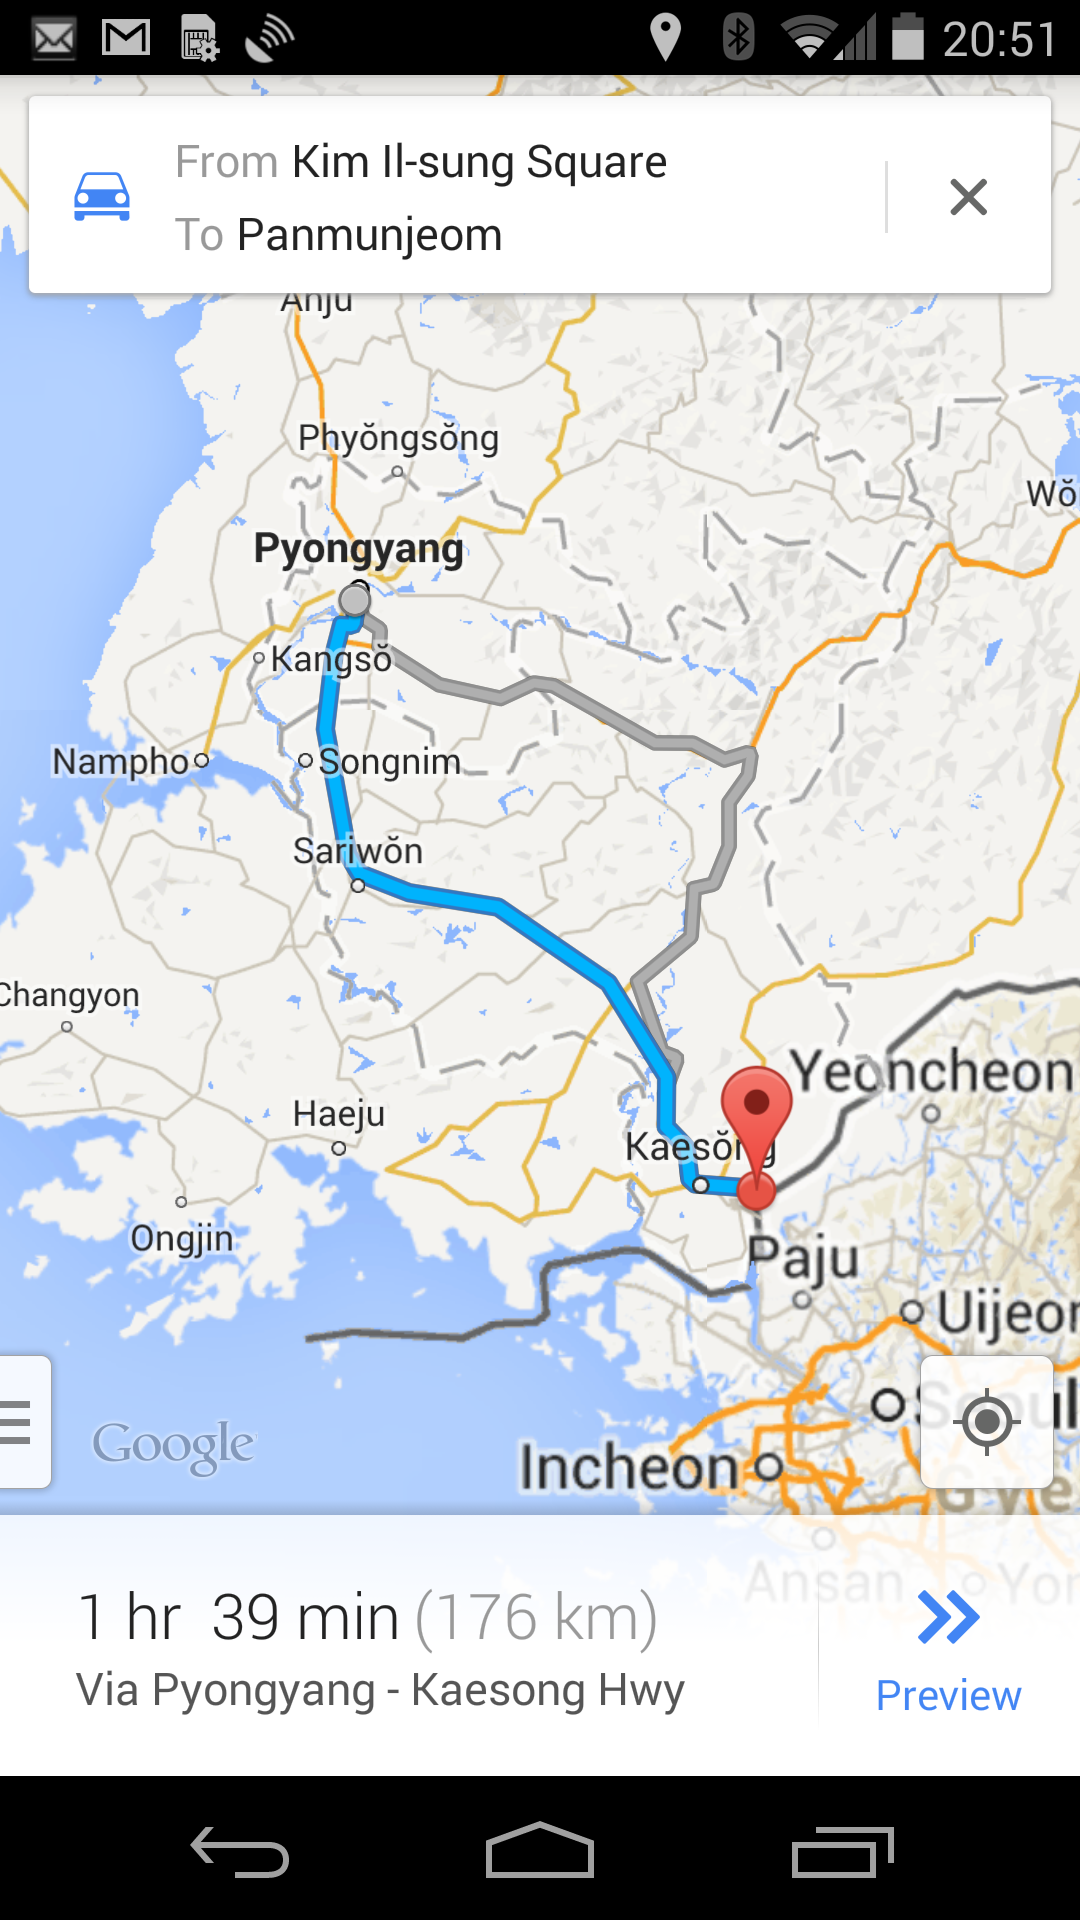 North Korea Driving Instructions Come To Google Maps - Nyc map app android